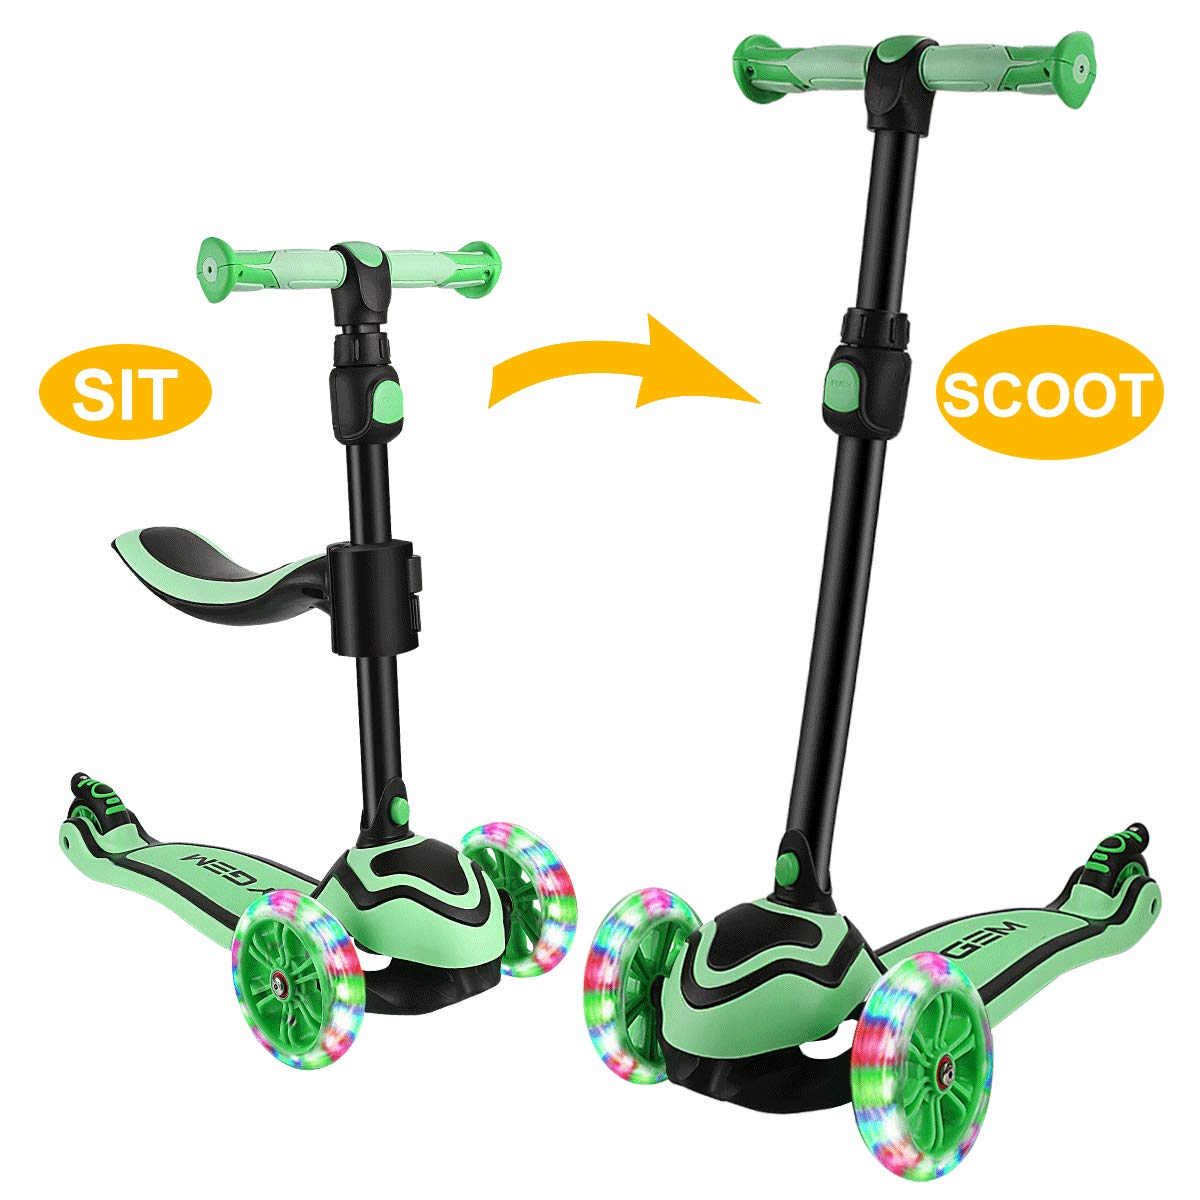 JOYGEM 2-in-1 Kids Scooter with Removable Seat, Deluxe 3 Wheel Todder Kick Scooter with Led Flashing Wheels & Adjustable Handlebar for 2-12 Years Boys Girls by JOYGEM